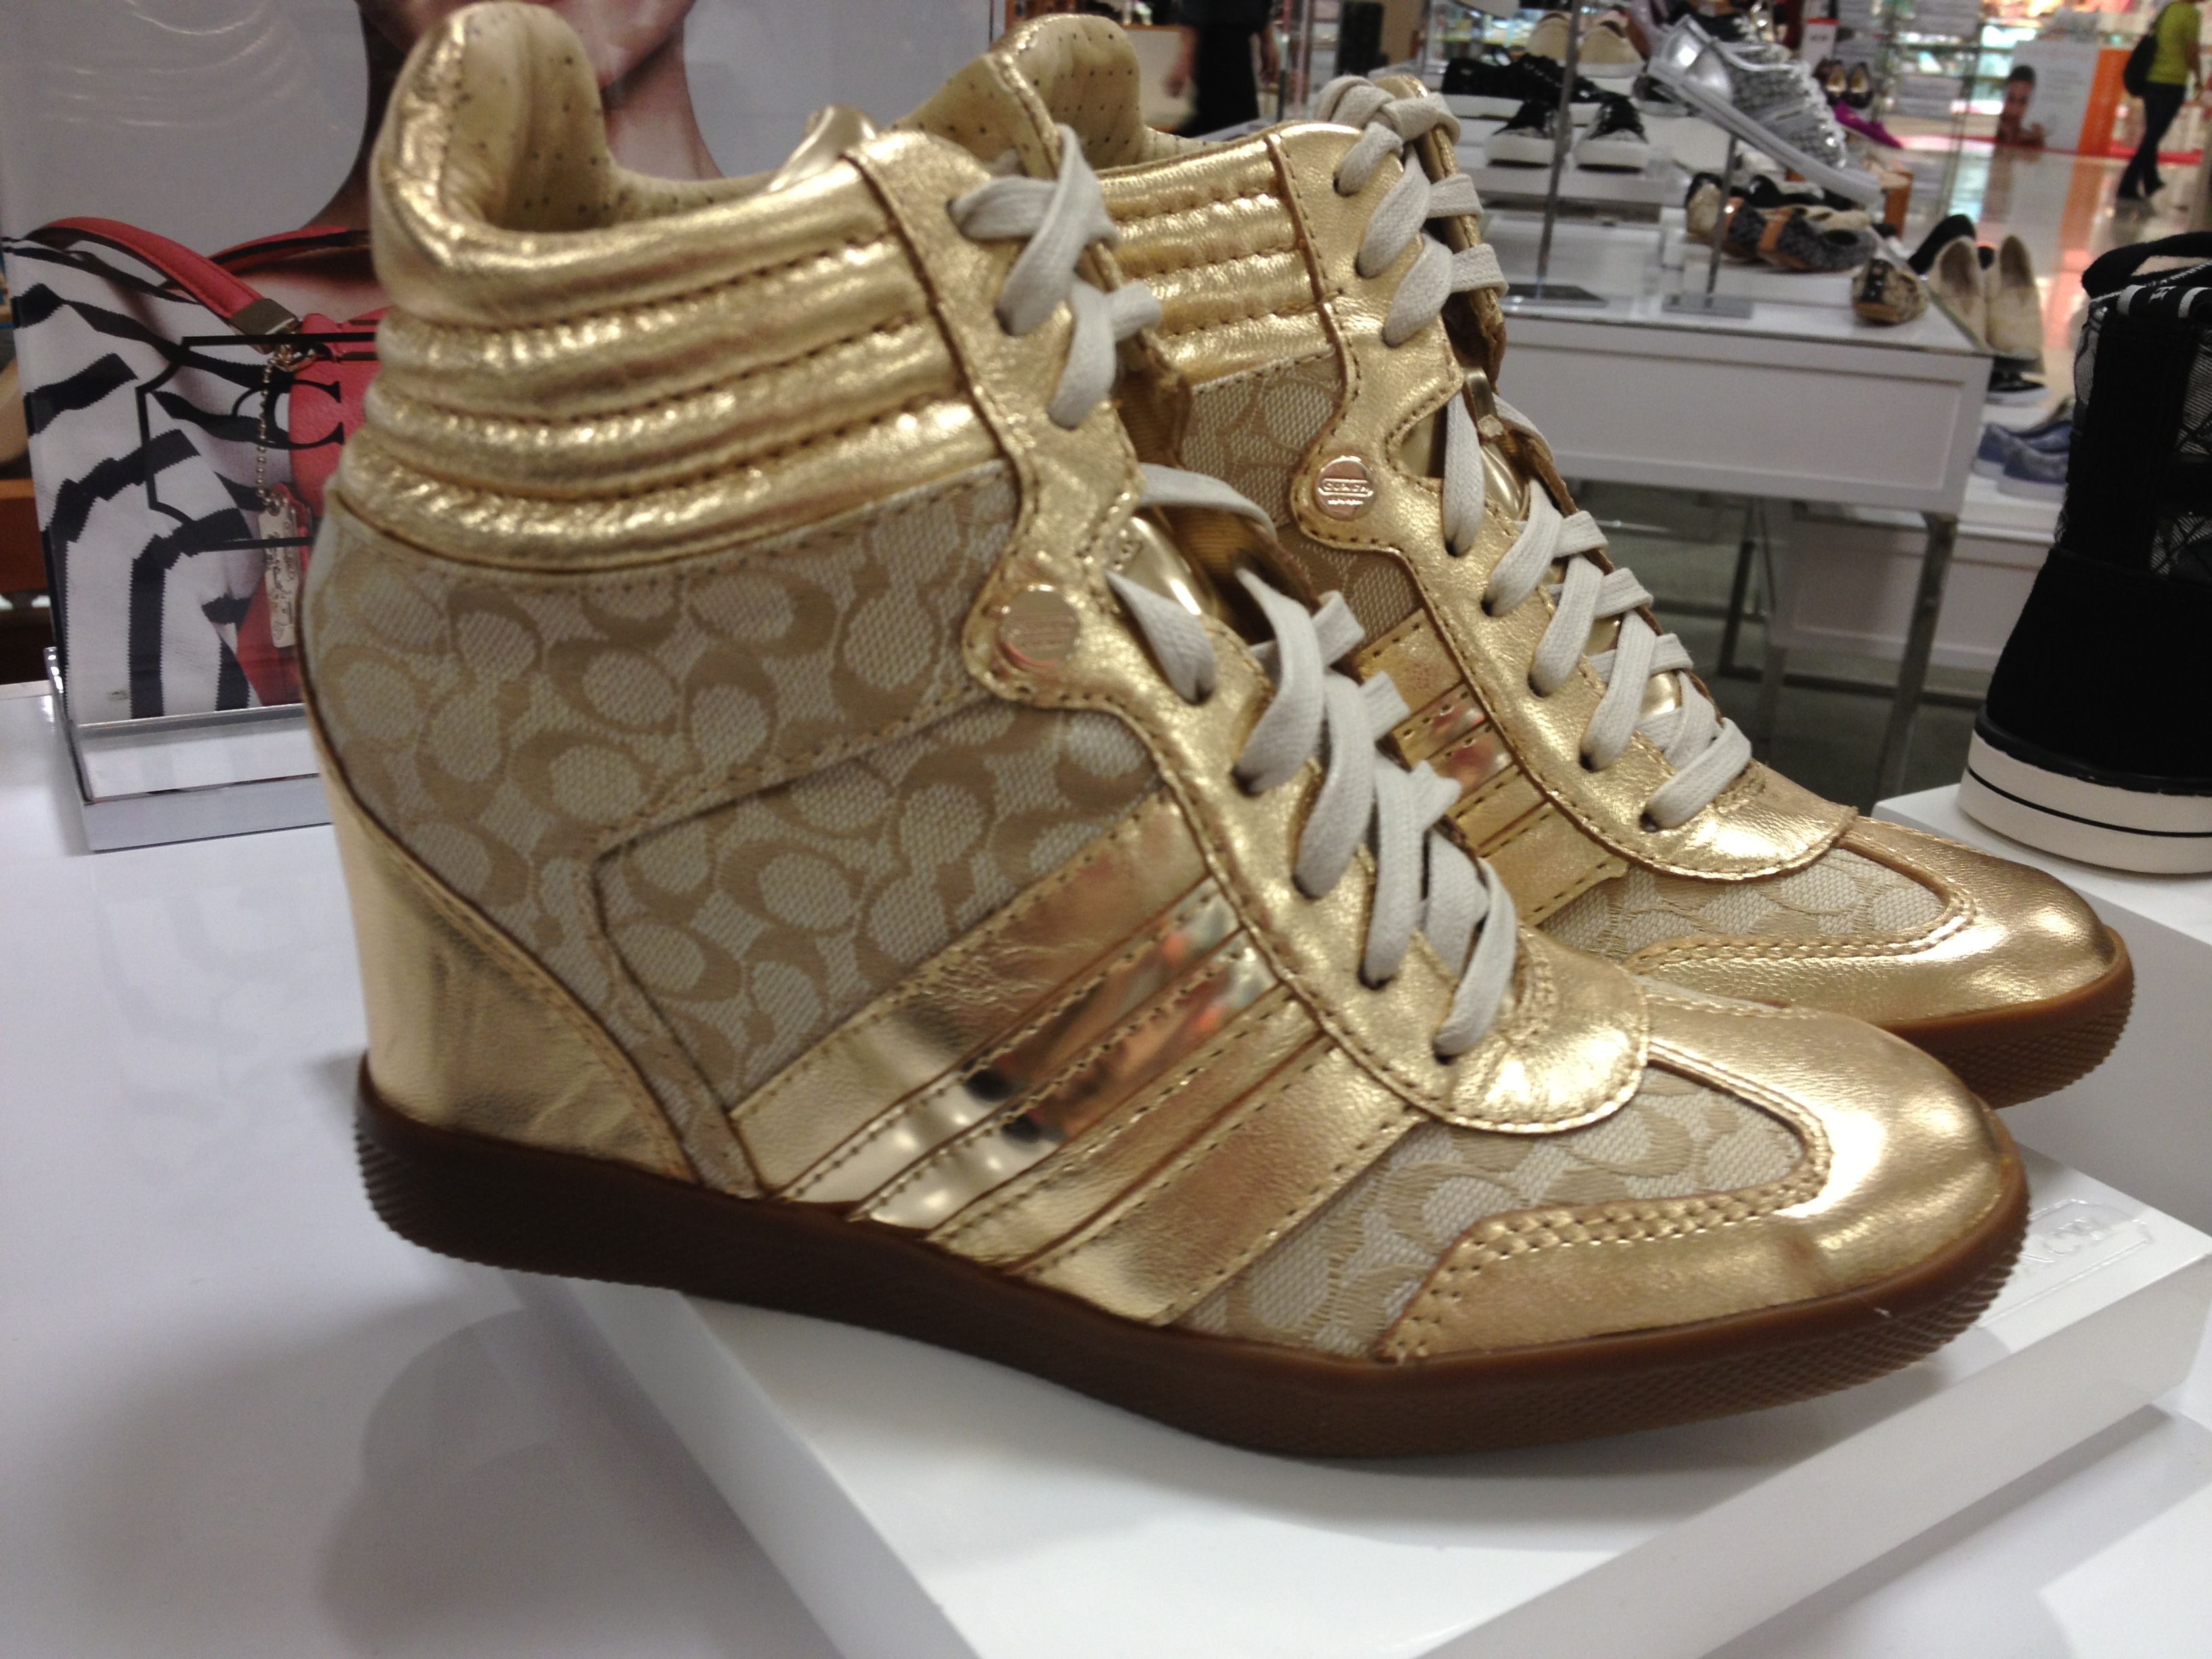 06406d6d9303 Coach wedge sneakers  129.00 at Macy s